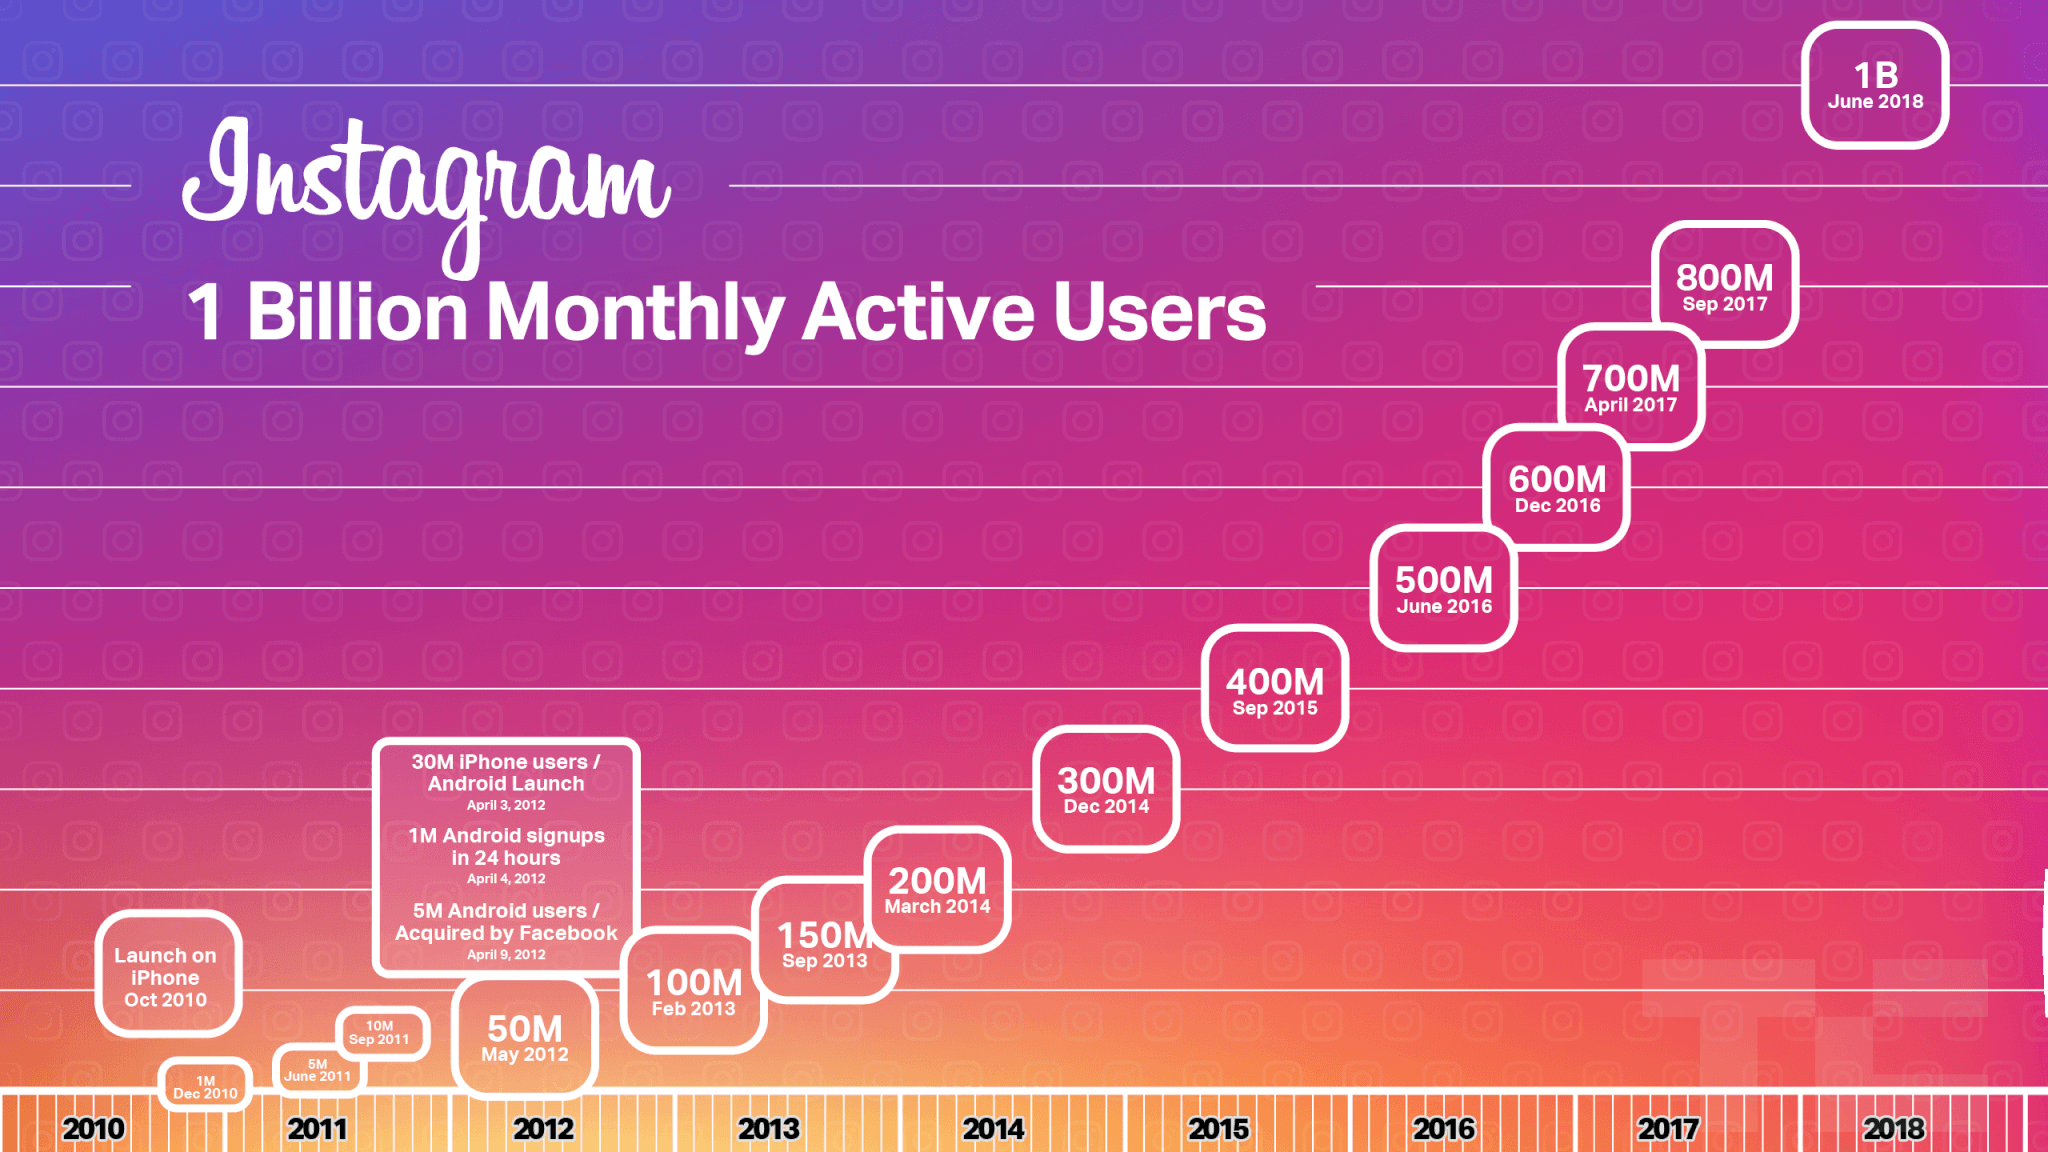 22 Instagram Statistics You Need to Know in 2019